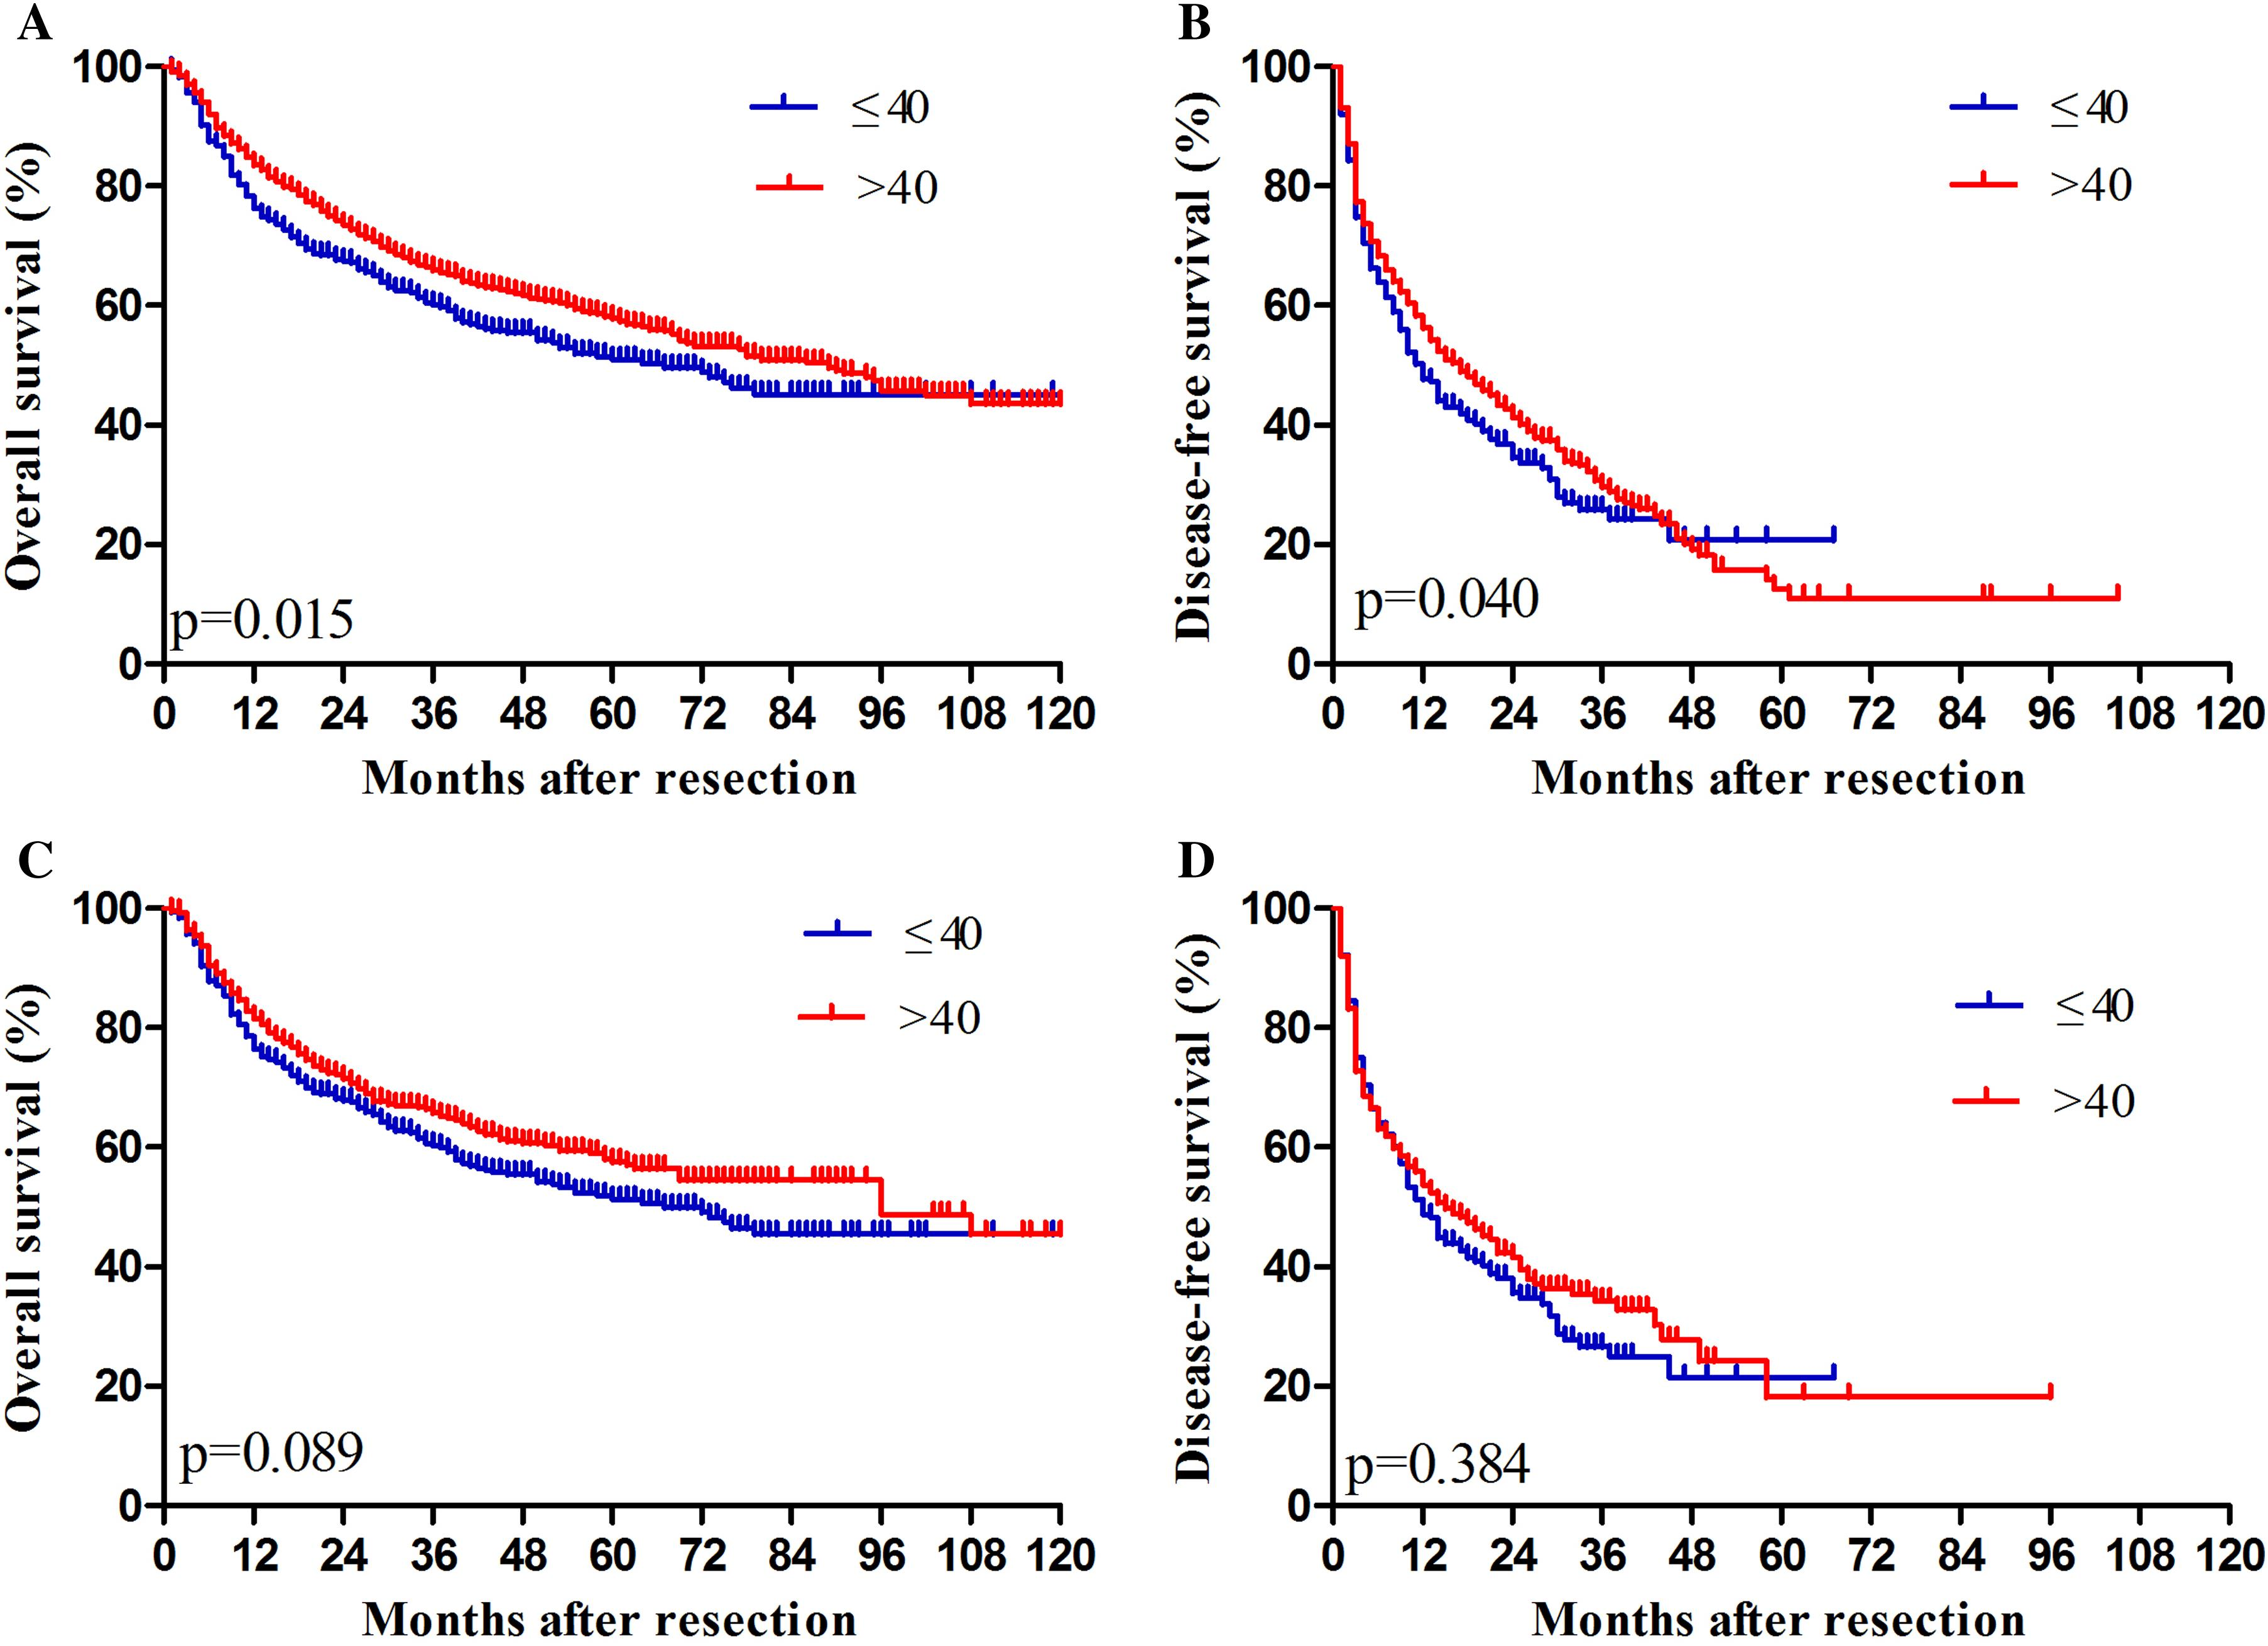 Overall and disease-free survival rates of HCC patients after hepatectomy. (A, B) Before propensity score matching. (C, D) After propensity score matching.